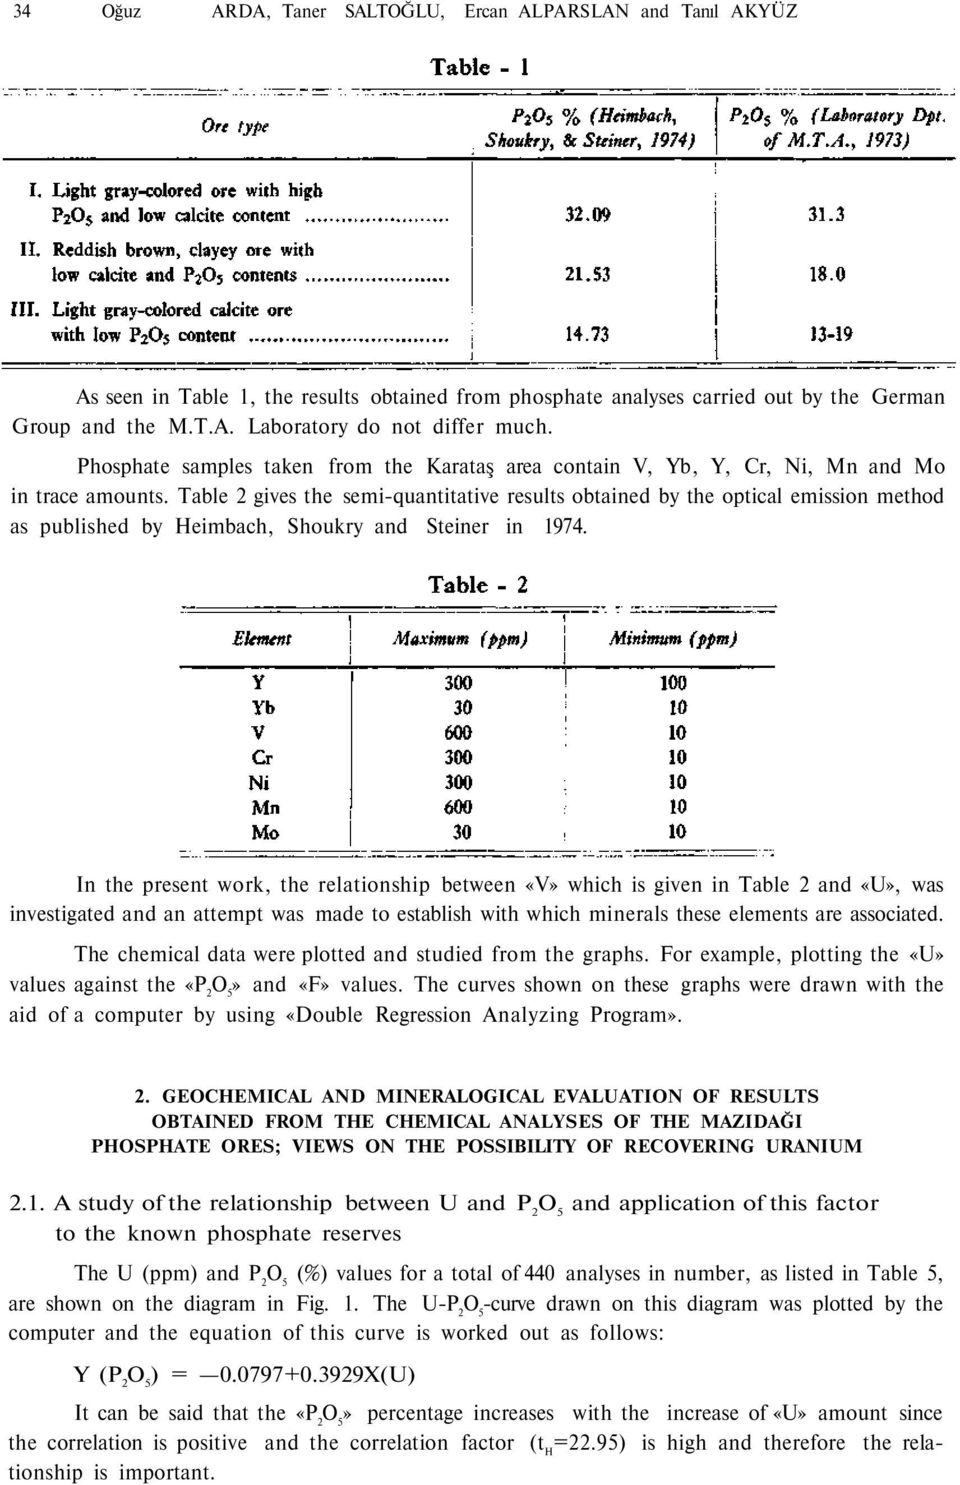 Table 2 gives the semi-quantitative results obtained by the optical emission method as published by Heimbach, Shoukry and Steiner in 1974.